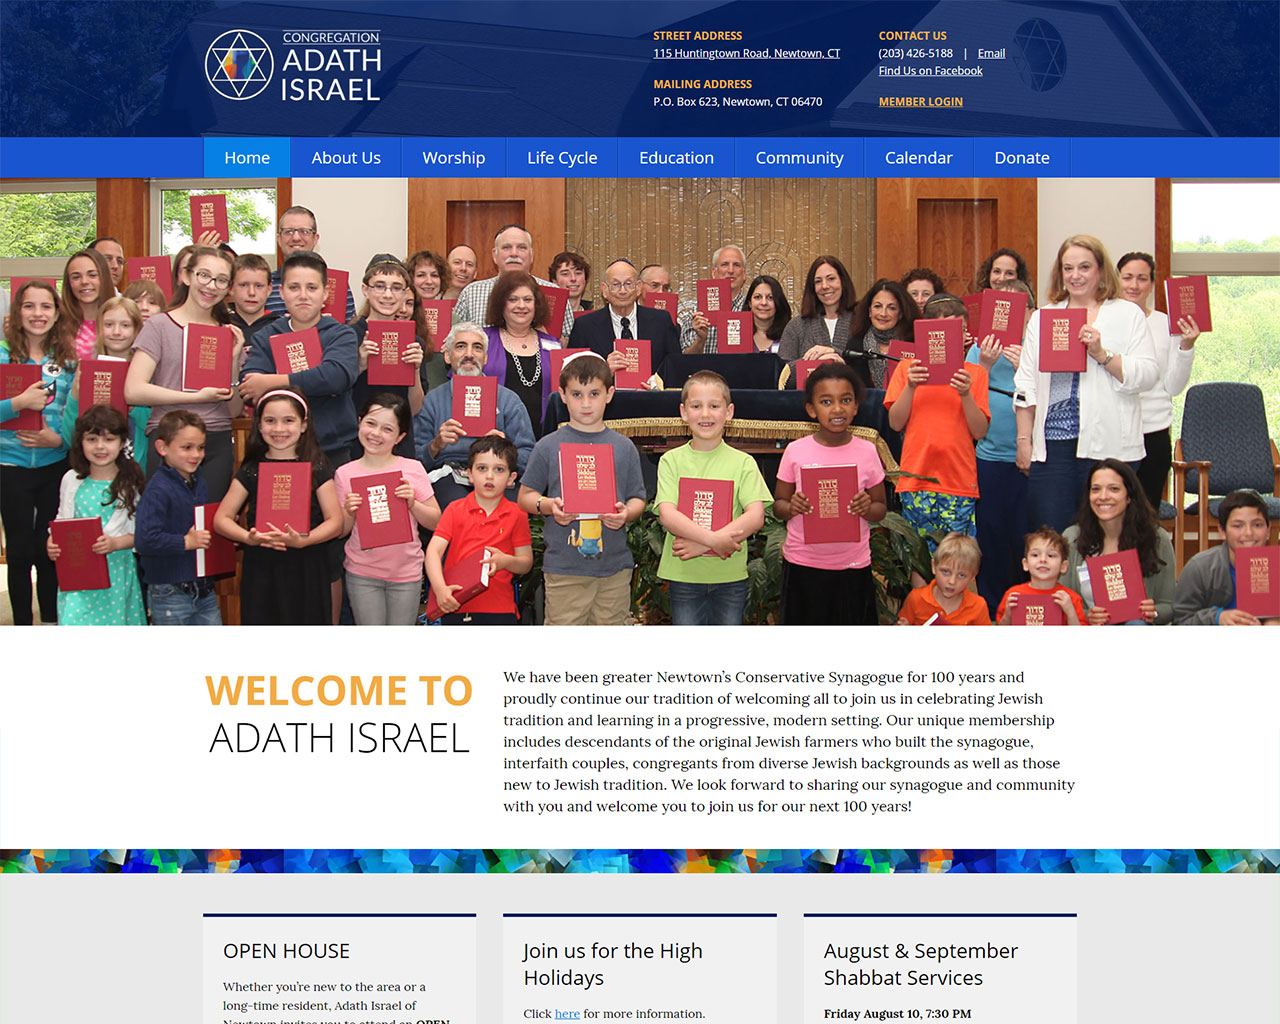 Adath Israel - synagogue website design homepage